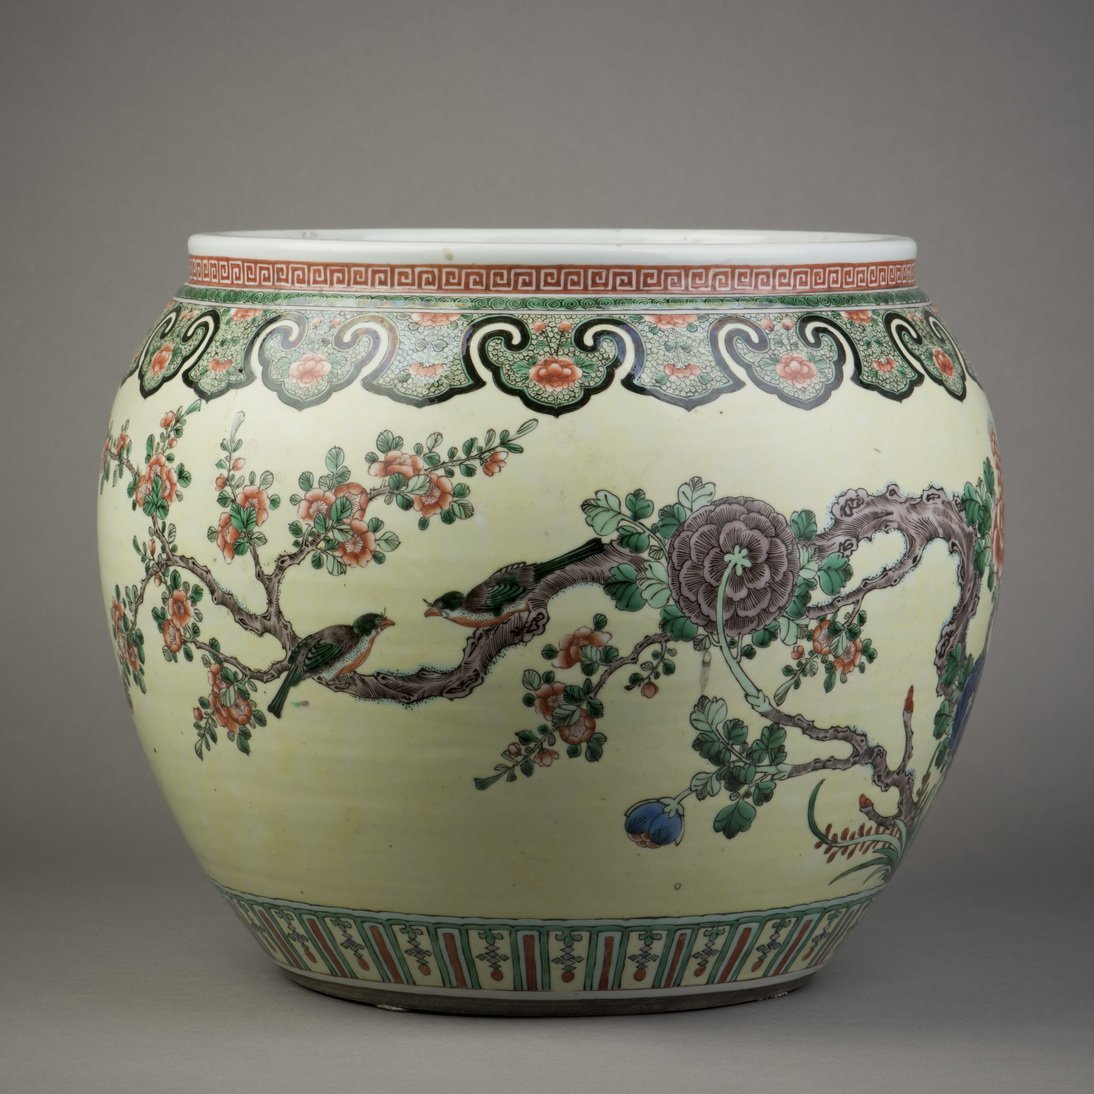 ANONYMOUS (QING DYNASTY), PAINTING BOWL